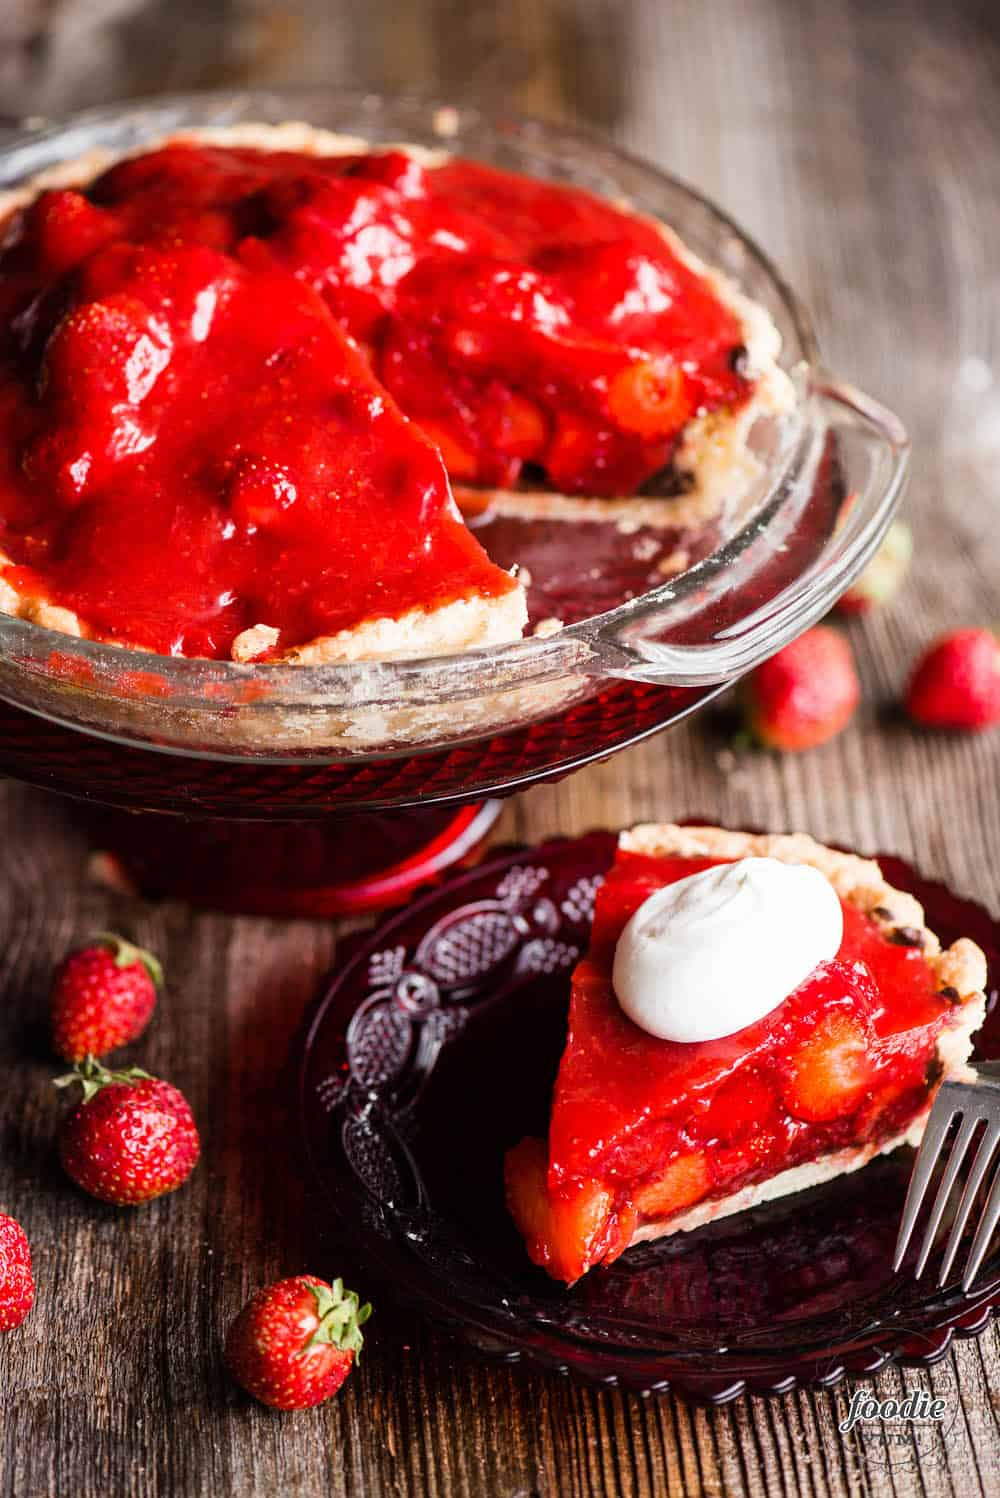 Slice of fresh strawberry pie with whipped cream